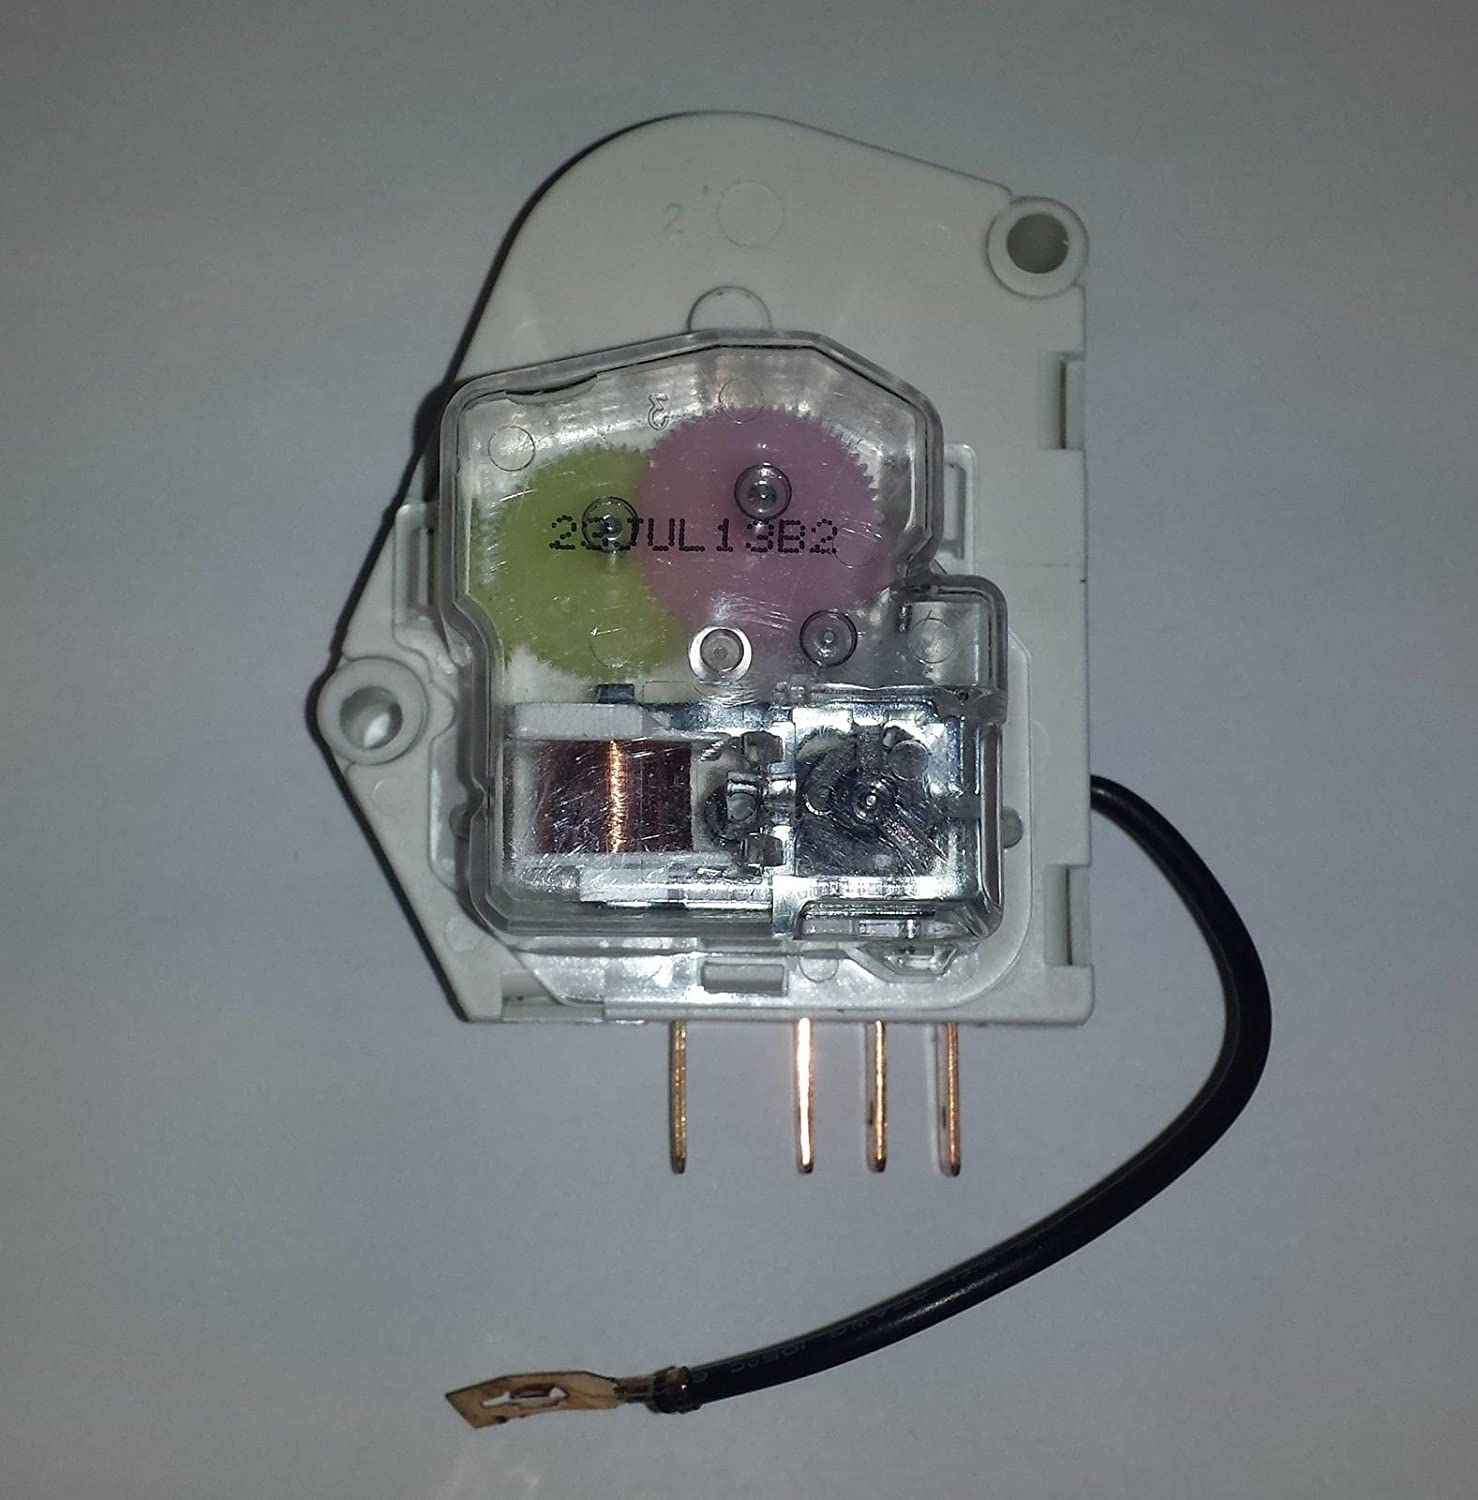 NEW - Refrigerator Defrost Timer for Whirlpool Sears 482493 483212 buybuynice